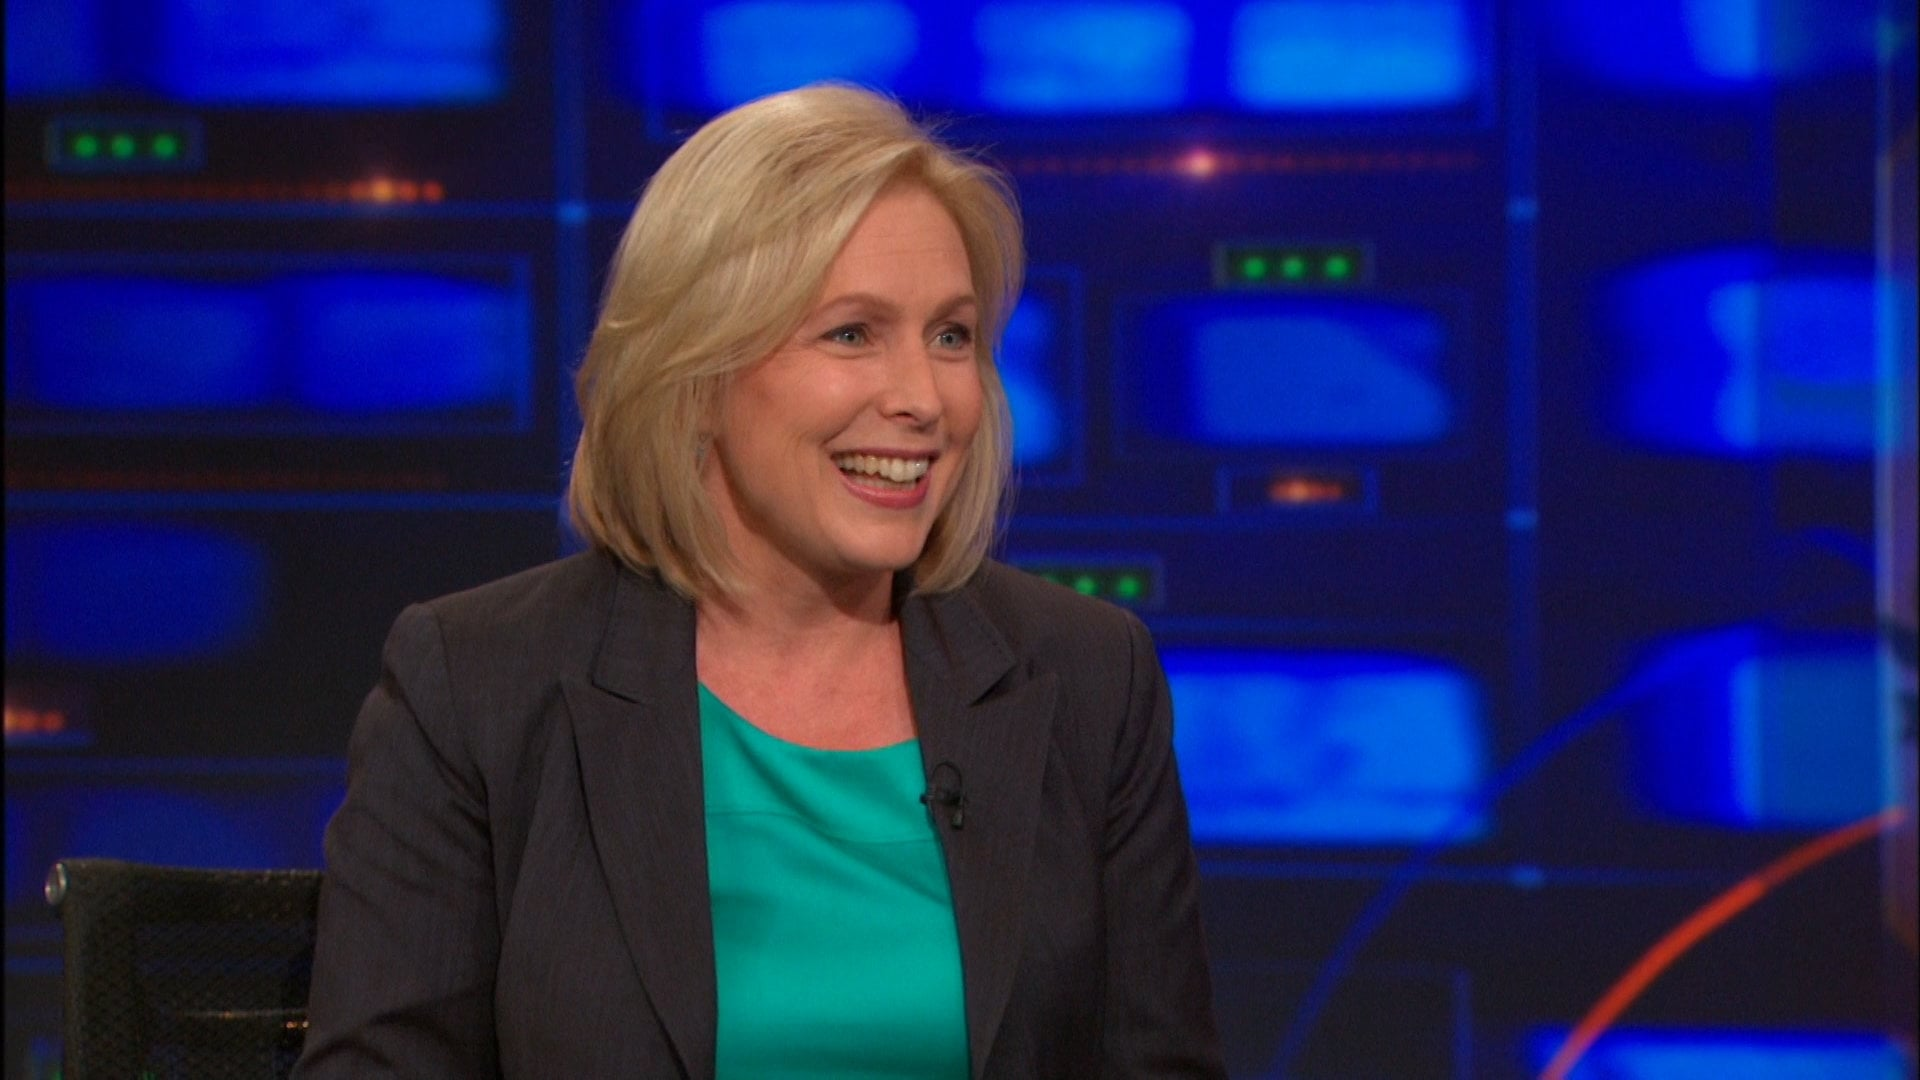 The Daily Show with Trevor Noah - Season 19 Episode 149 : Kirsten Gillibrand